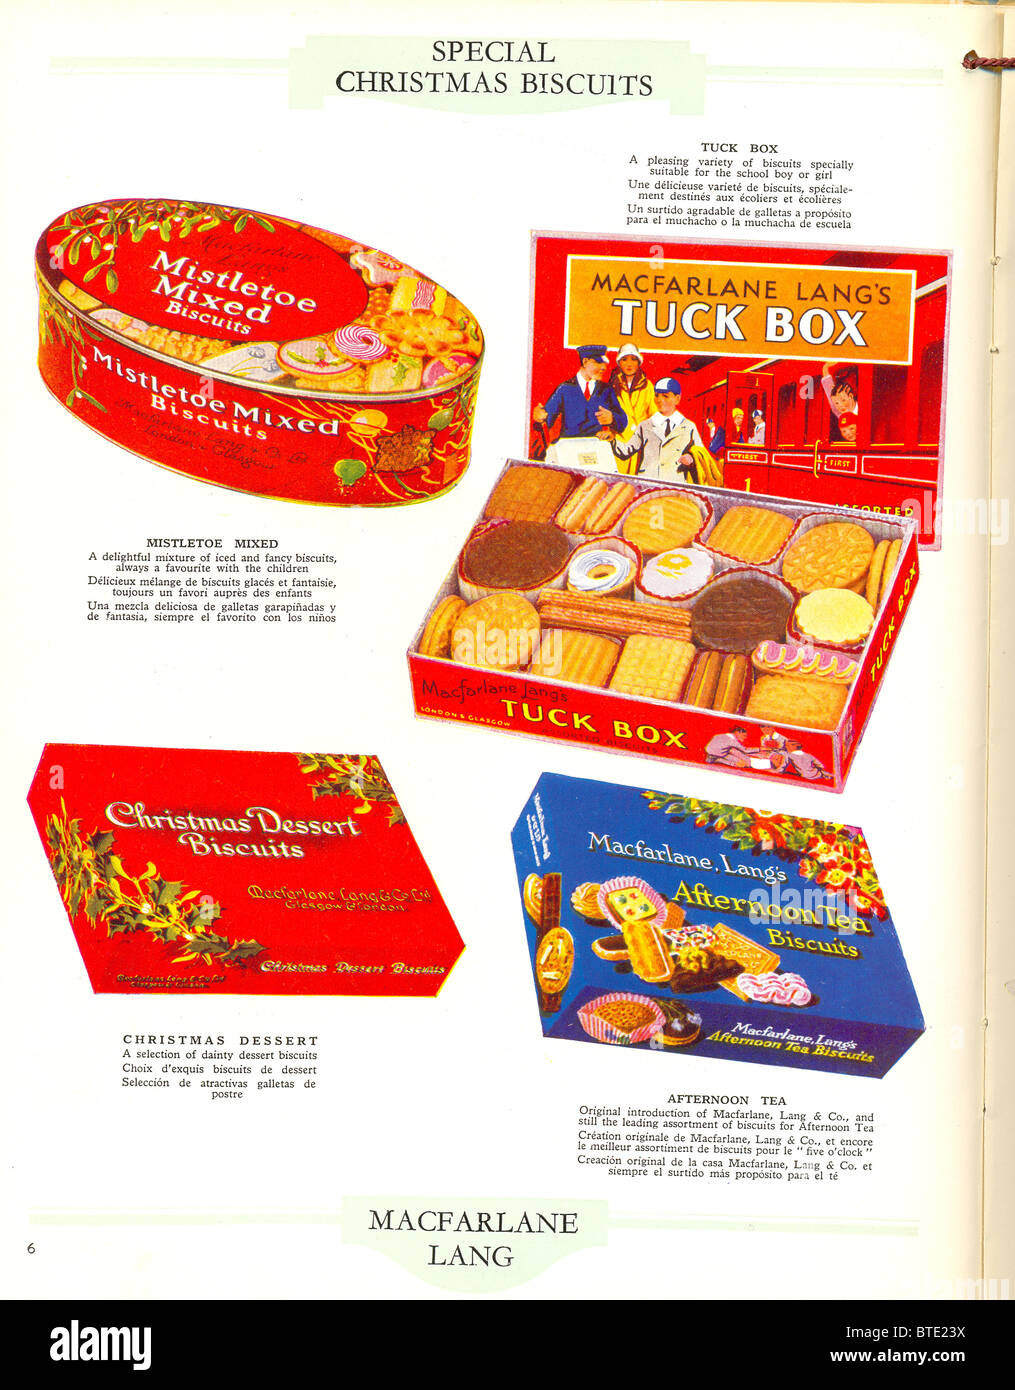 Special Christmas Biscuits from Macfarlane Lang's  catalogue - Stock Image